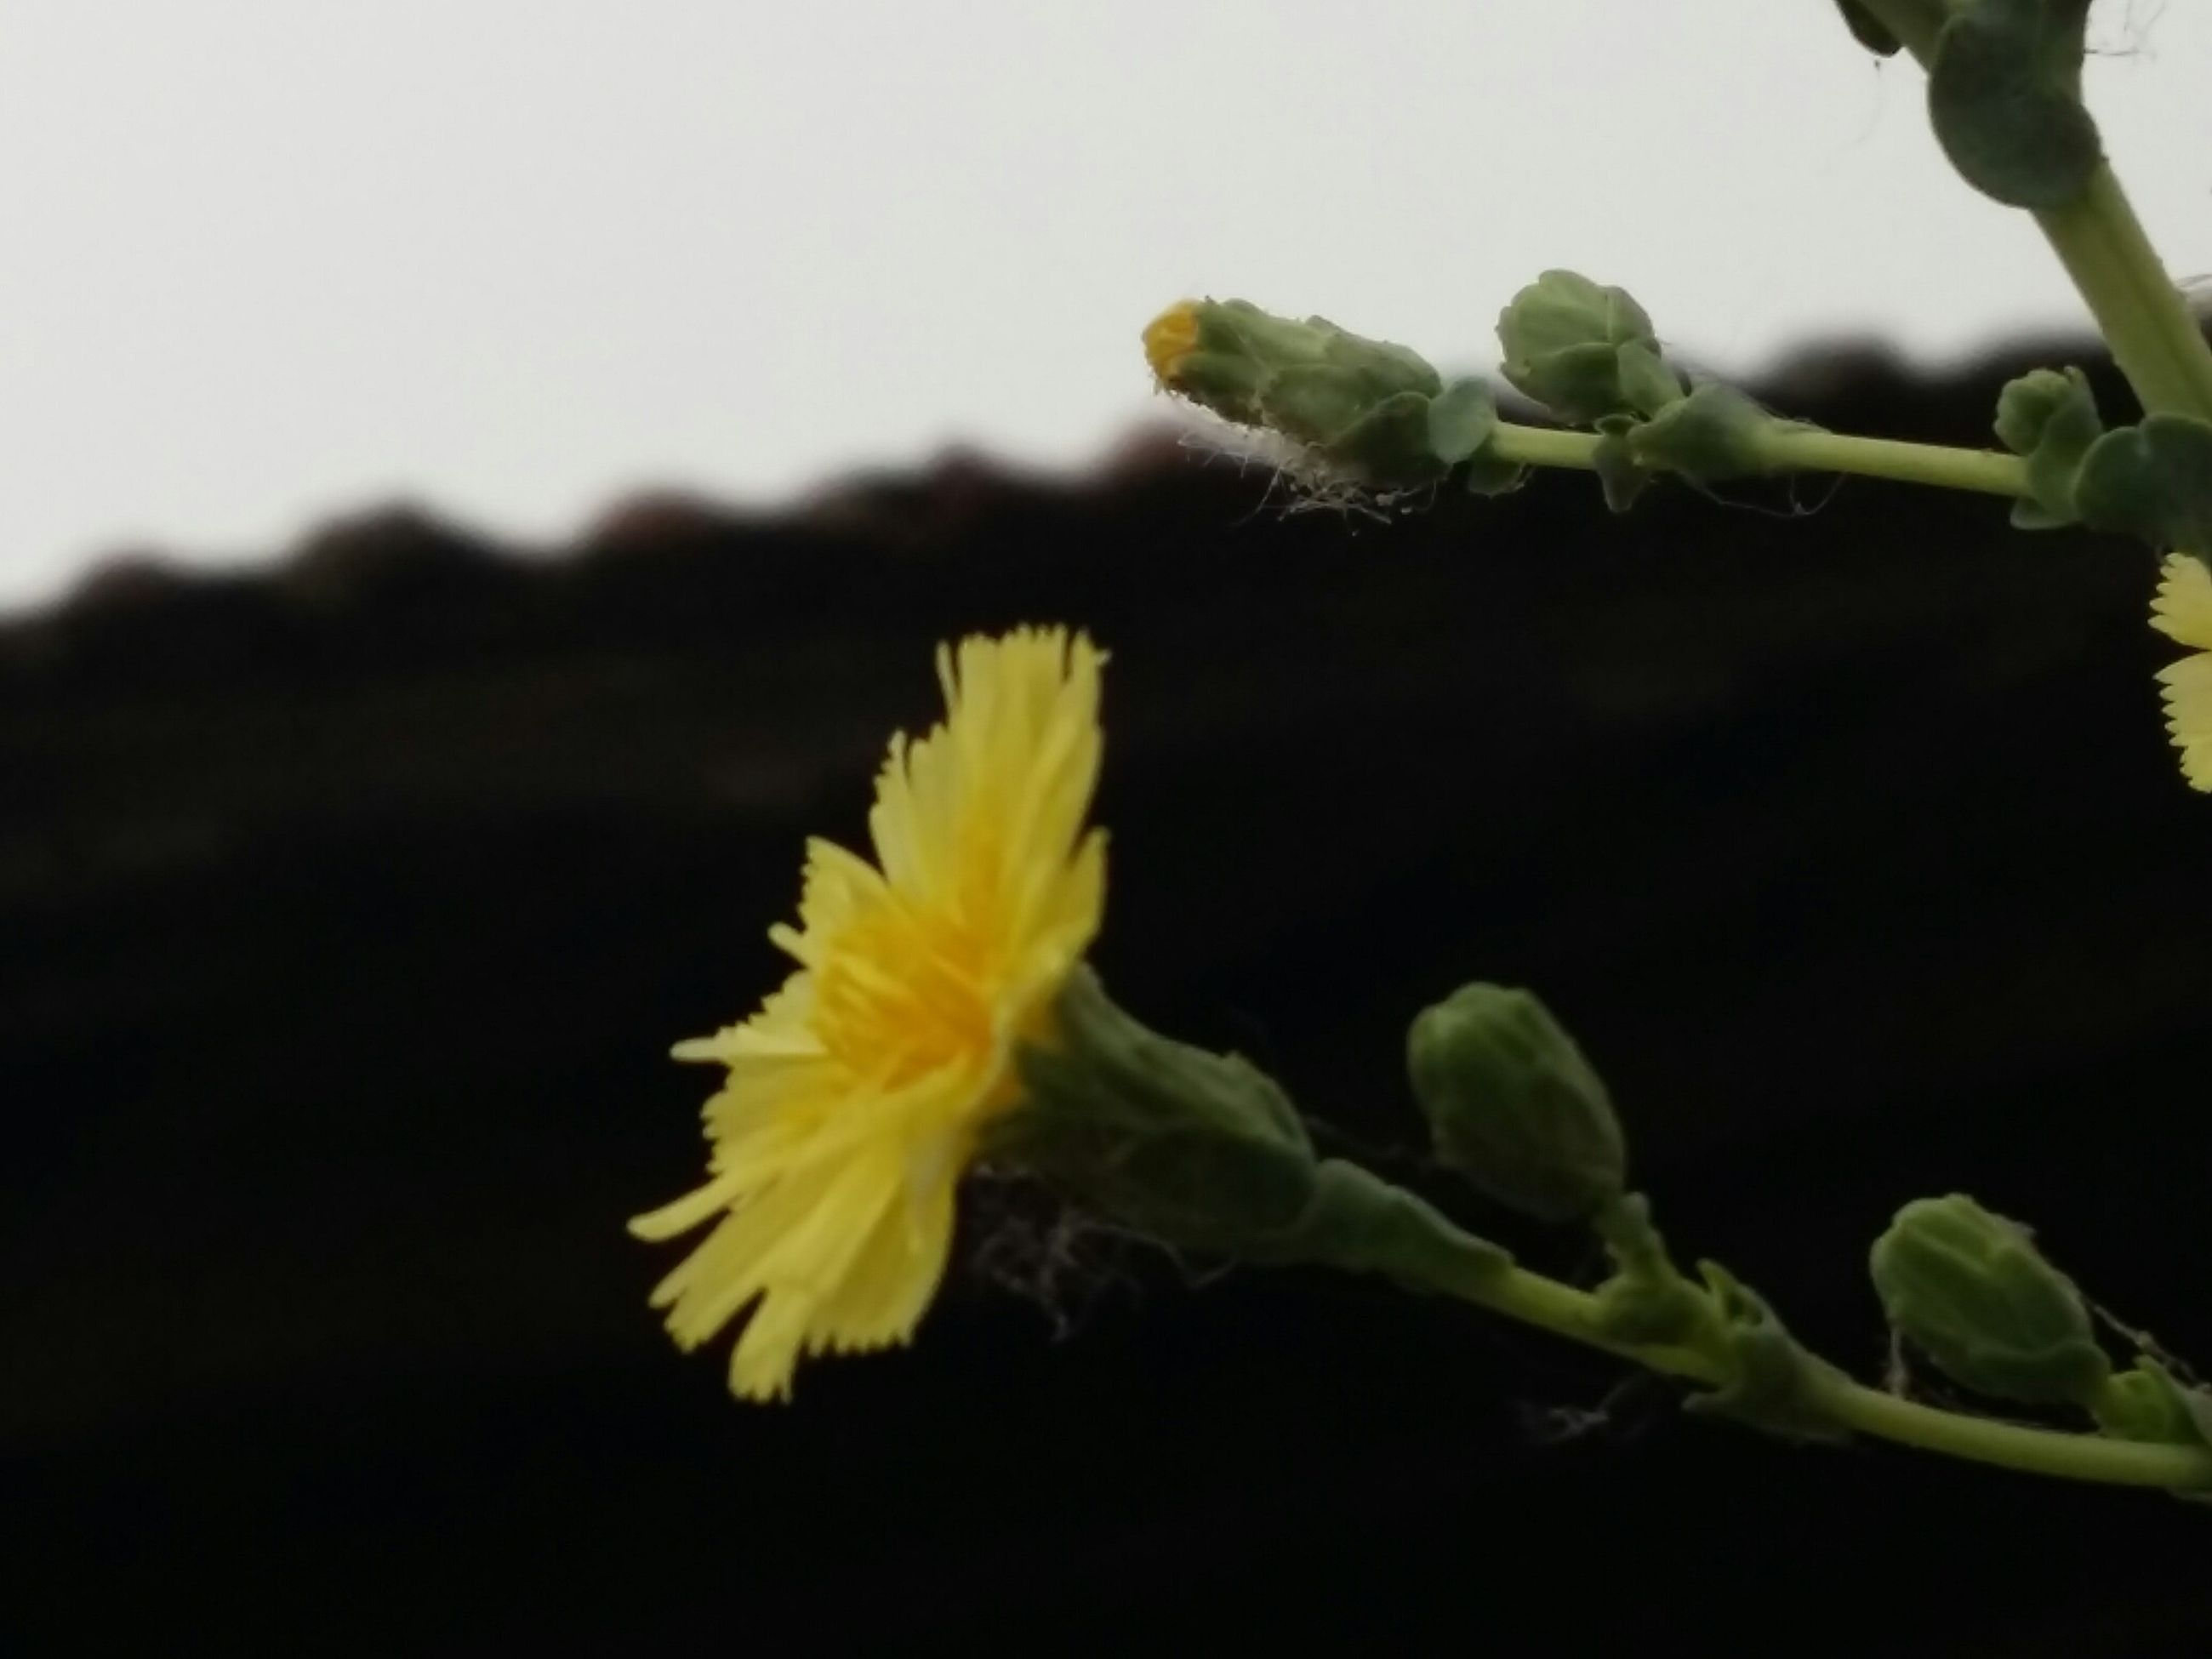 flower, close-up, yellow, plant, freshness, growth, leaf, fragility, petal, nature, focus on foreground, beauty in nature, stem, flower head, green color, studio shot, copy space, no people, single flower, outdoors